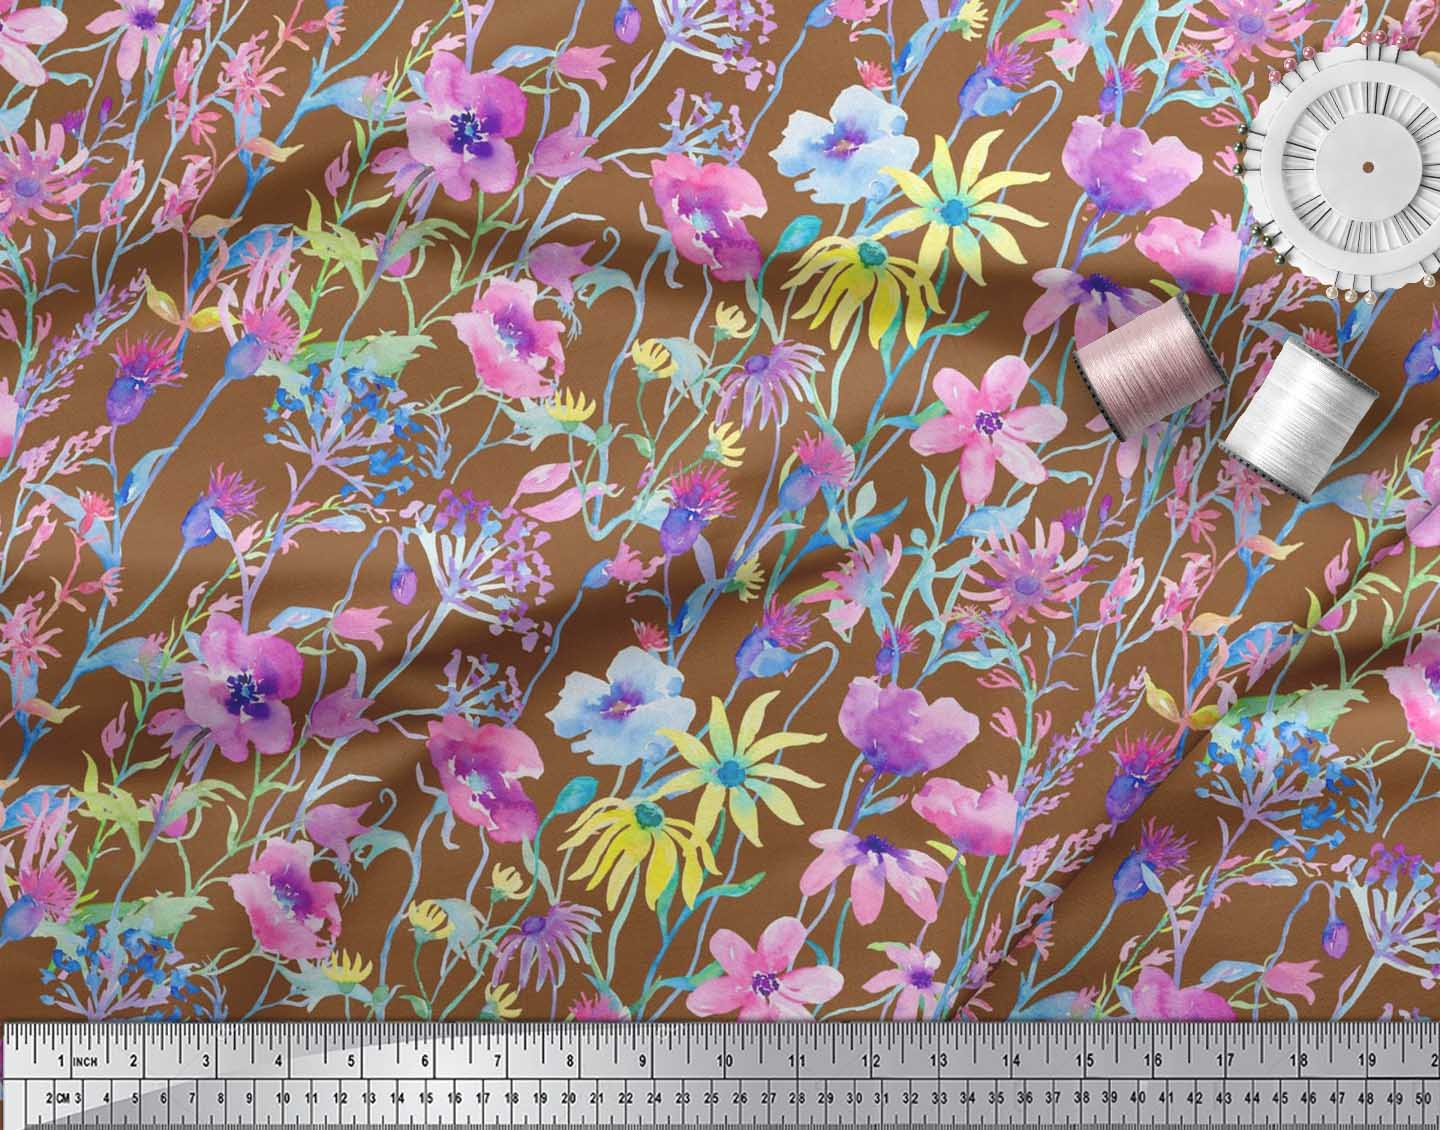 Soimoi-Brown-Cotton-Poplin-Fabric-Flower-Watercolor-Decor-Fabric-Z47 thumbnail 3